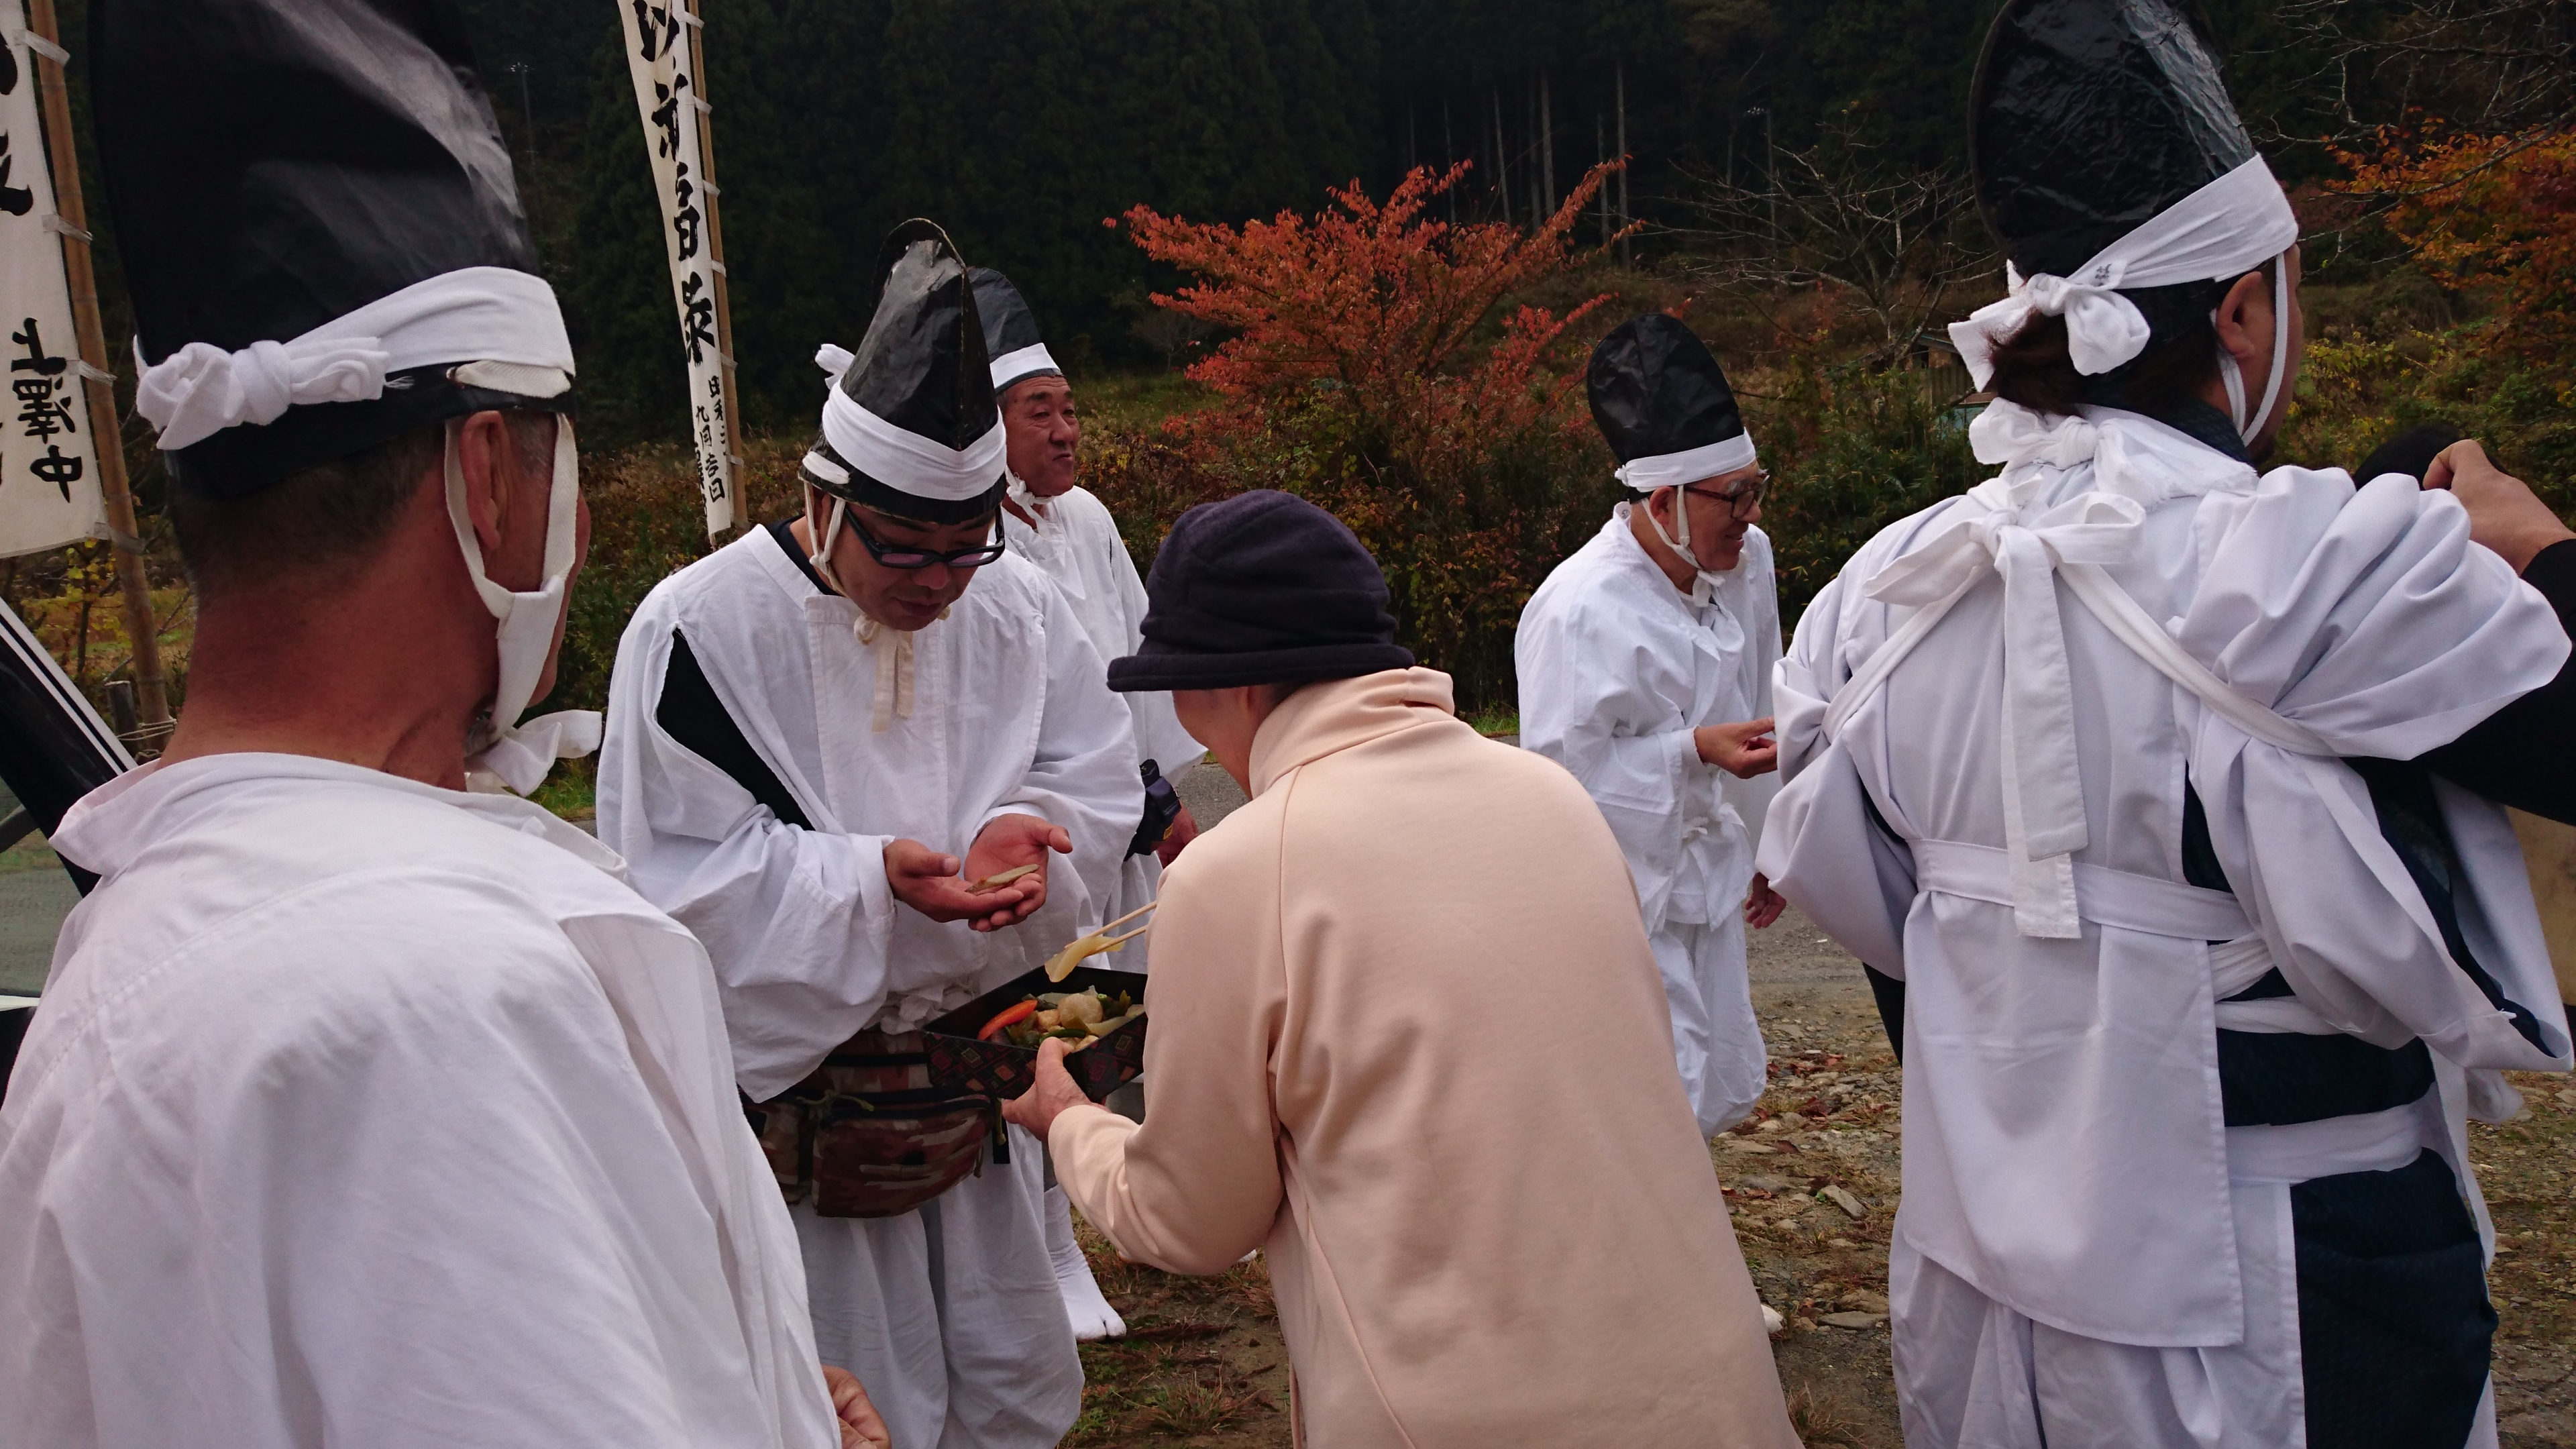 Picture of a few men gathering around a stall offering light refreshments